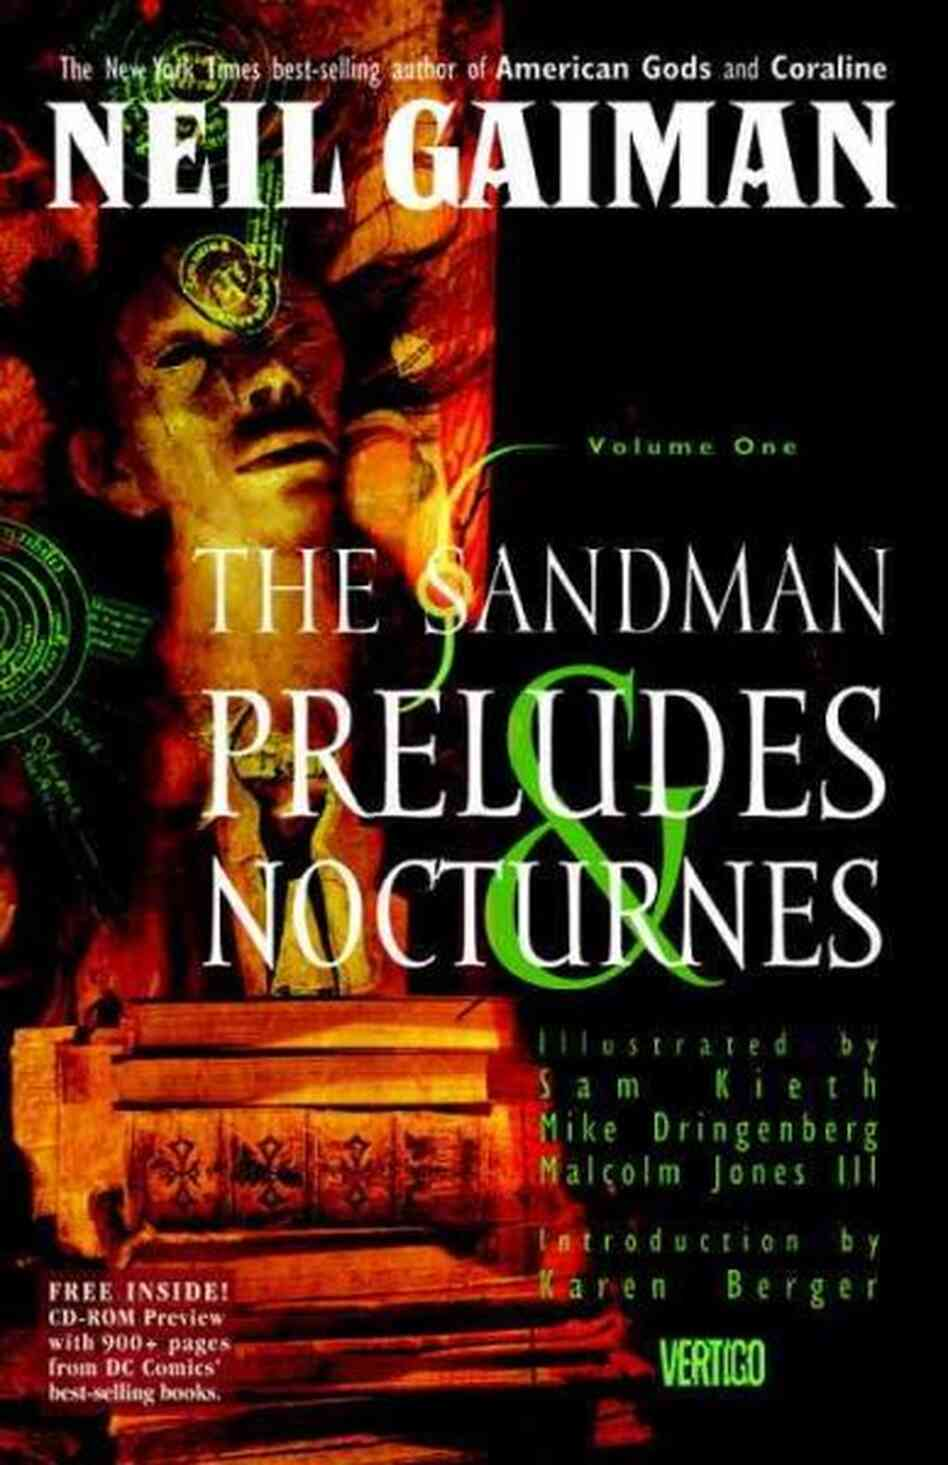 Book Cover Fantasy Explanation : The sandman